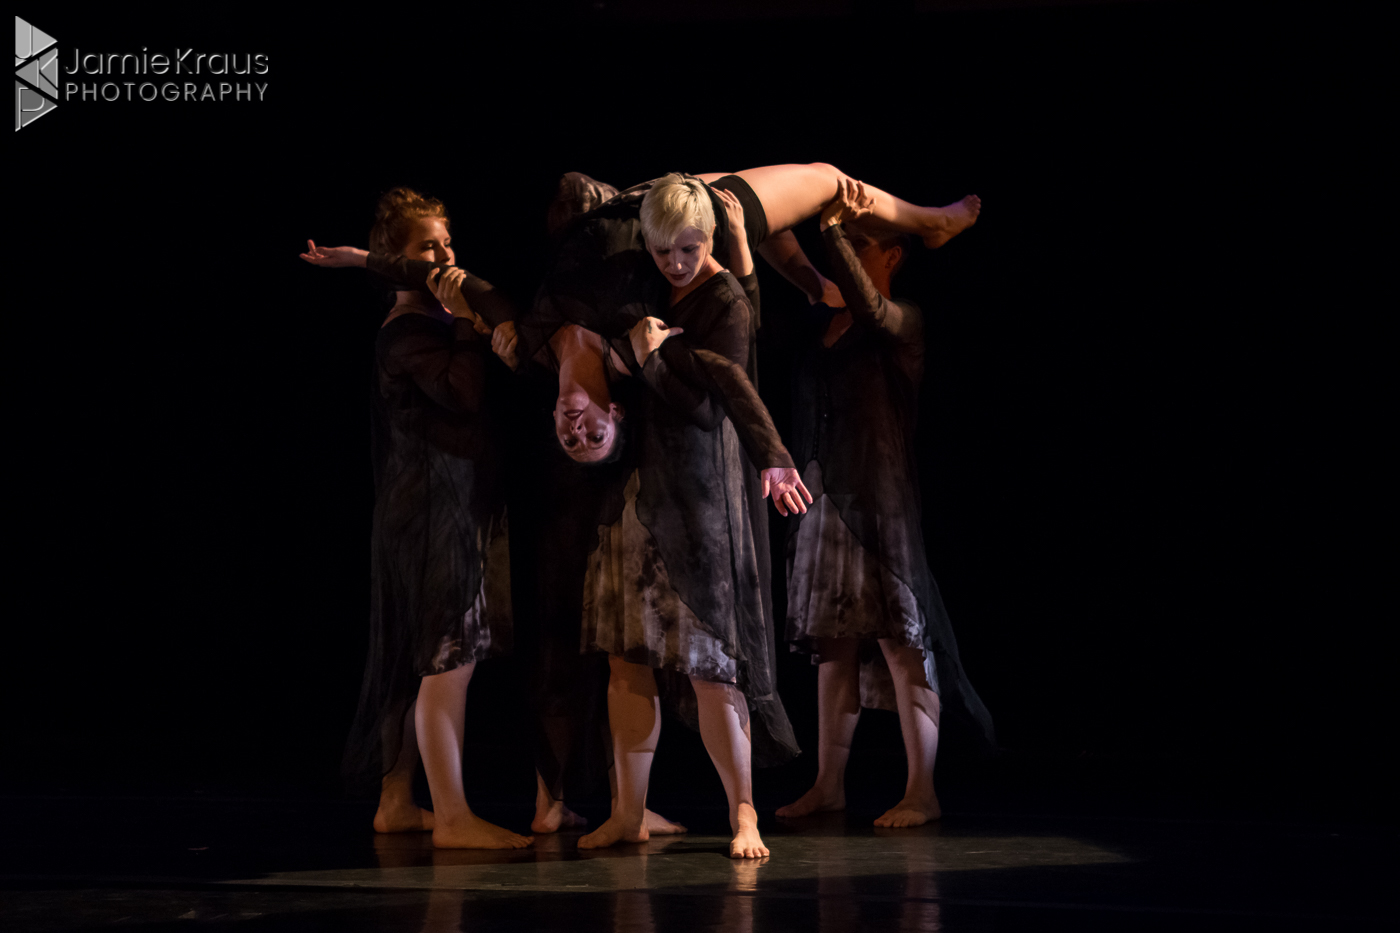 denver performing arts photography